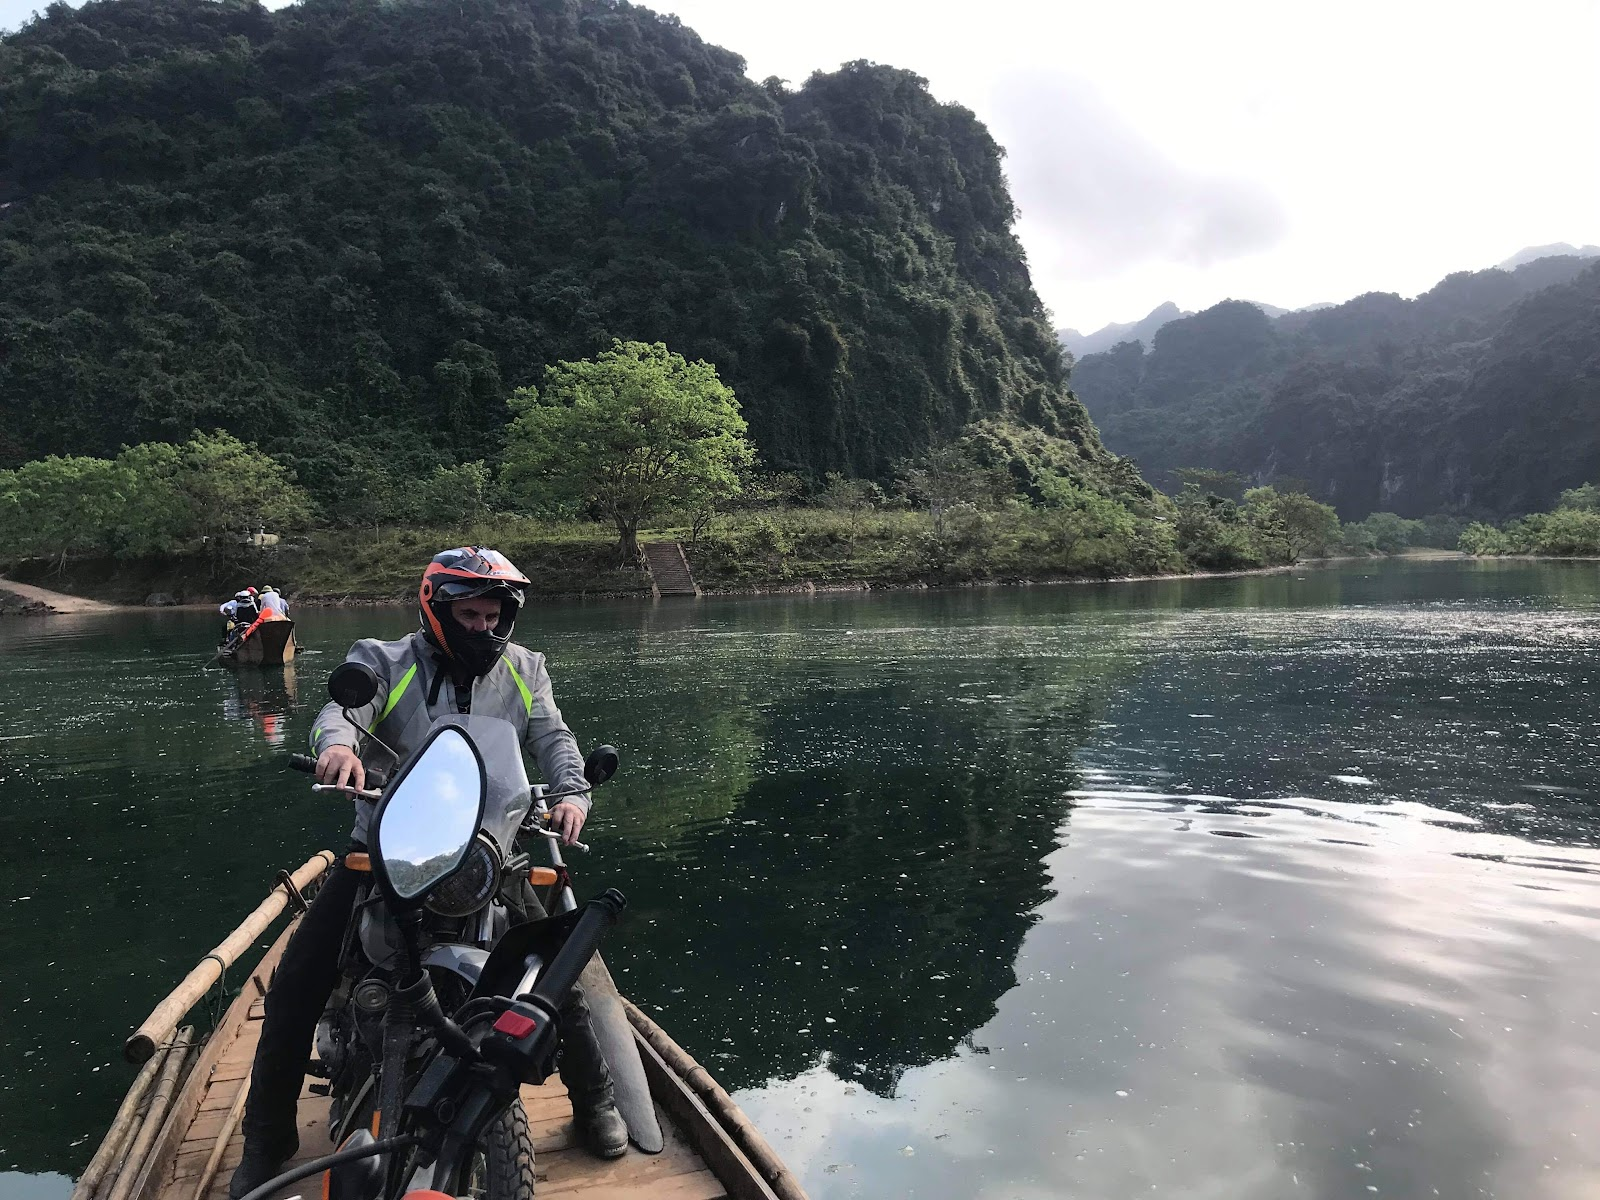 Onyabike Adventures tour on a boat: Motorbike routes Phong Nha